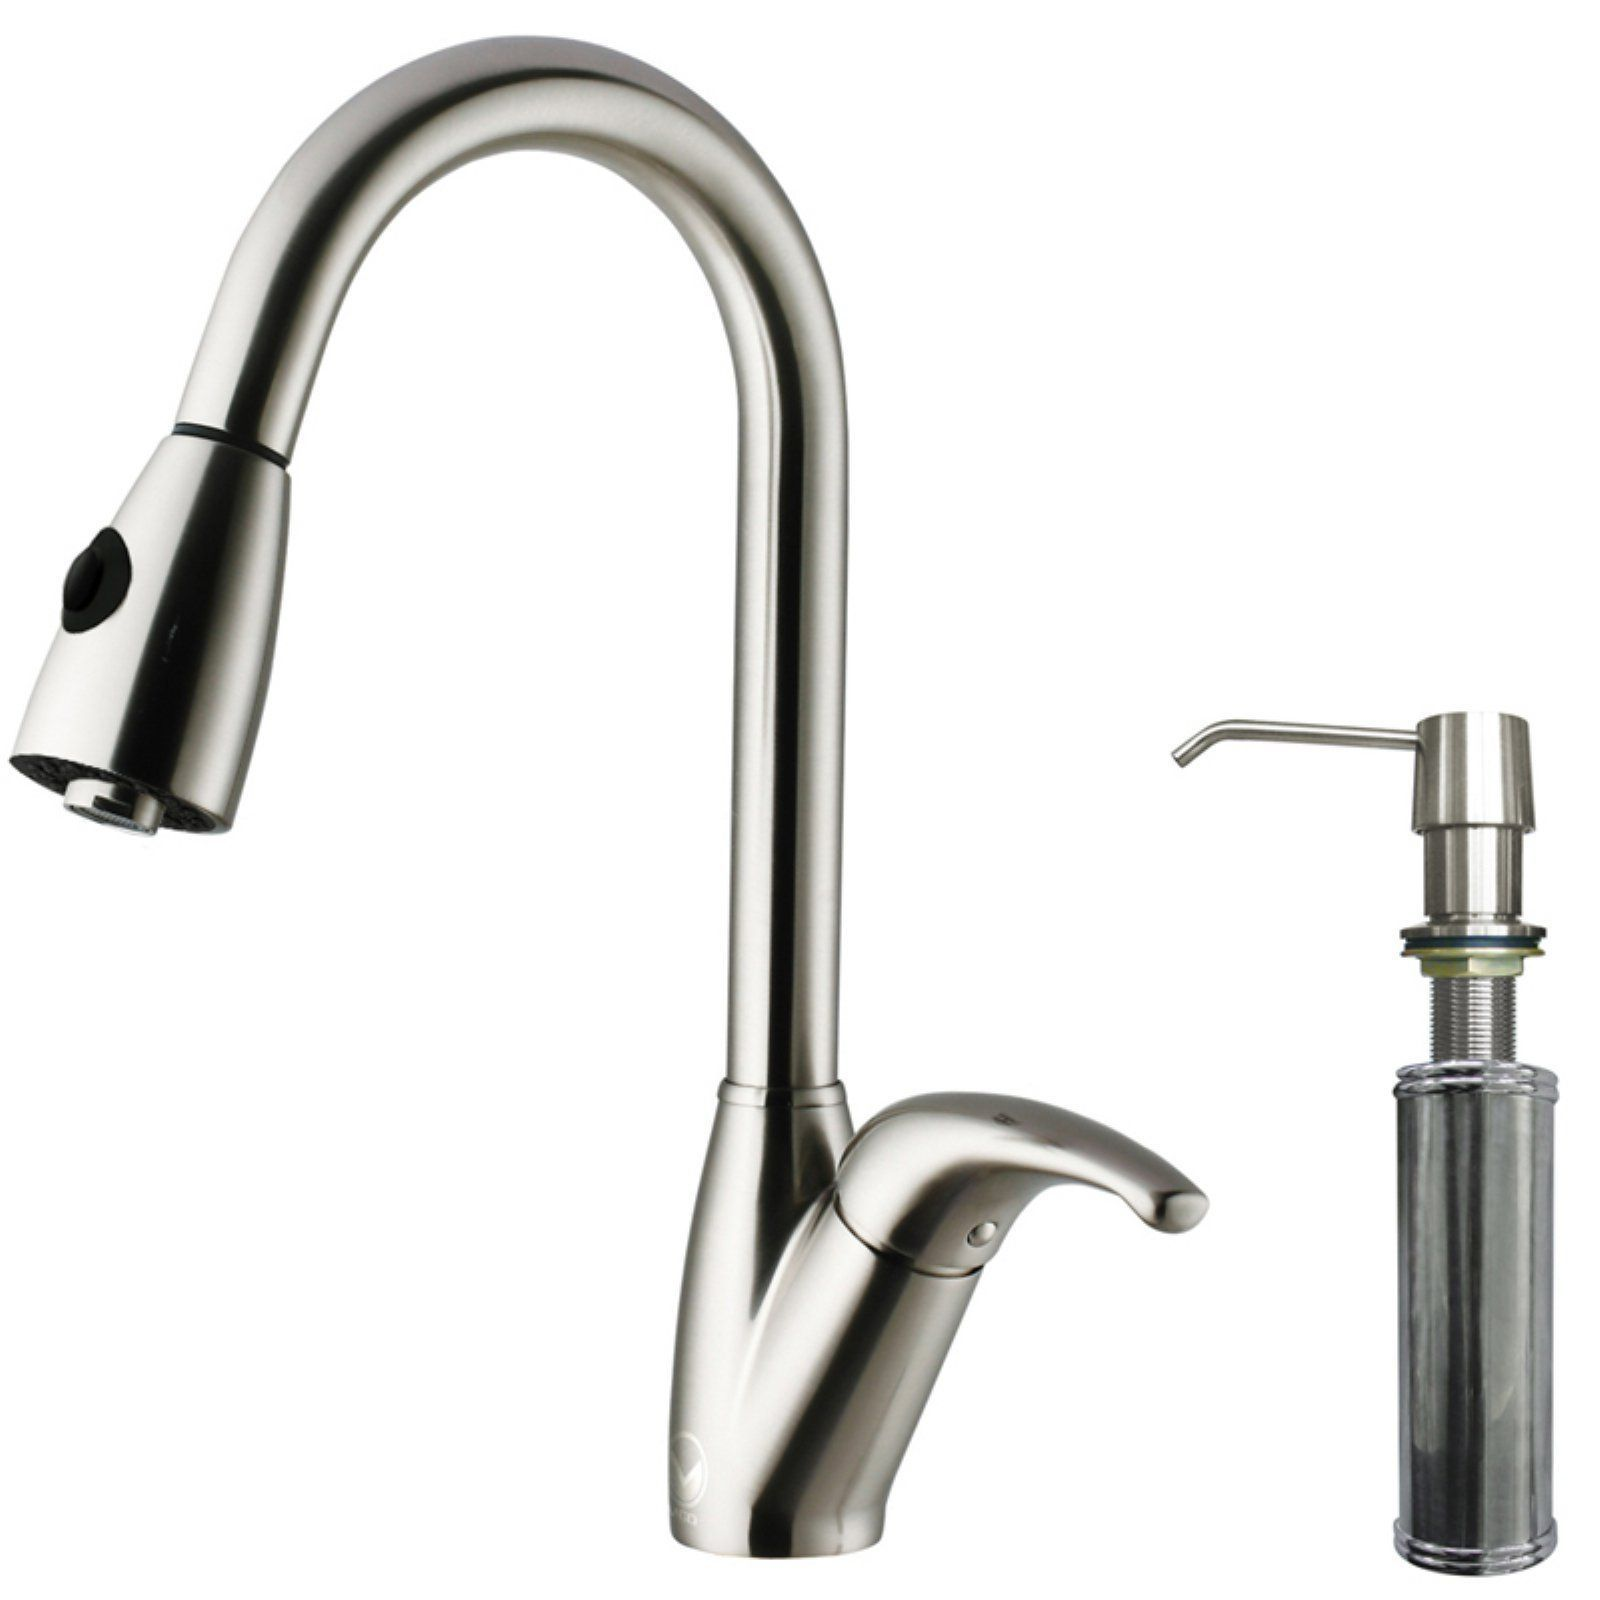 Vigo Vg02017stk2 Single Handle Pull Down Kitchen Faucet With